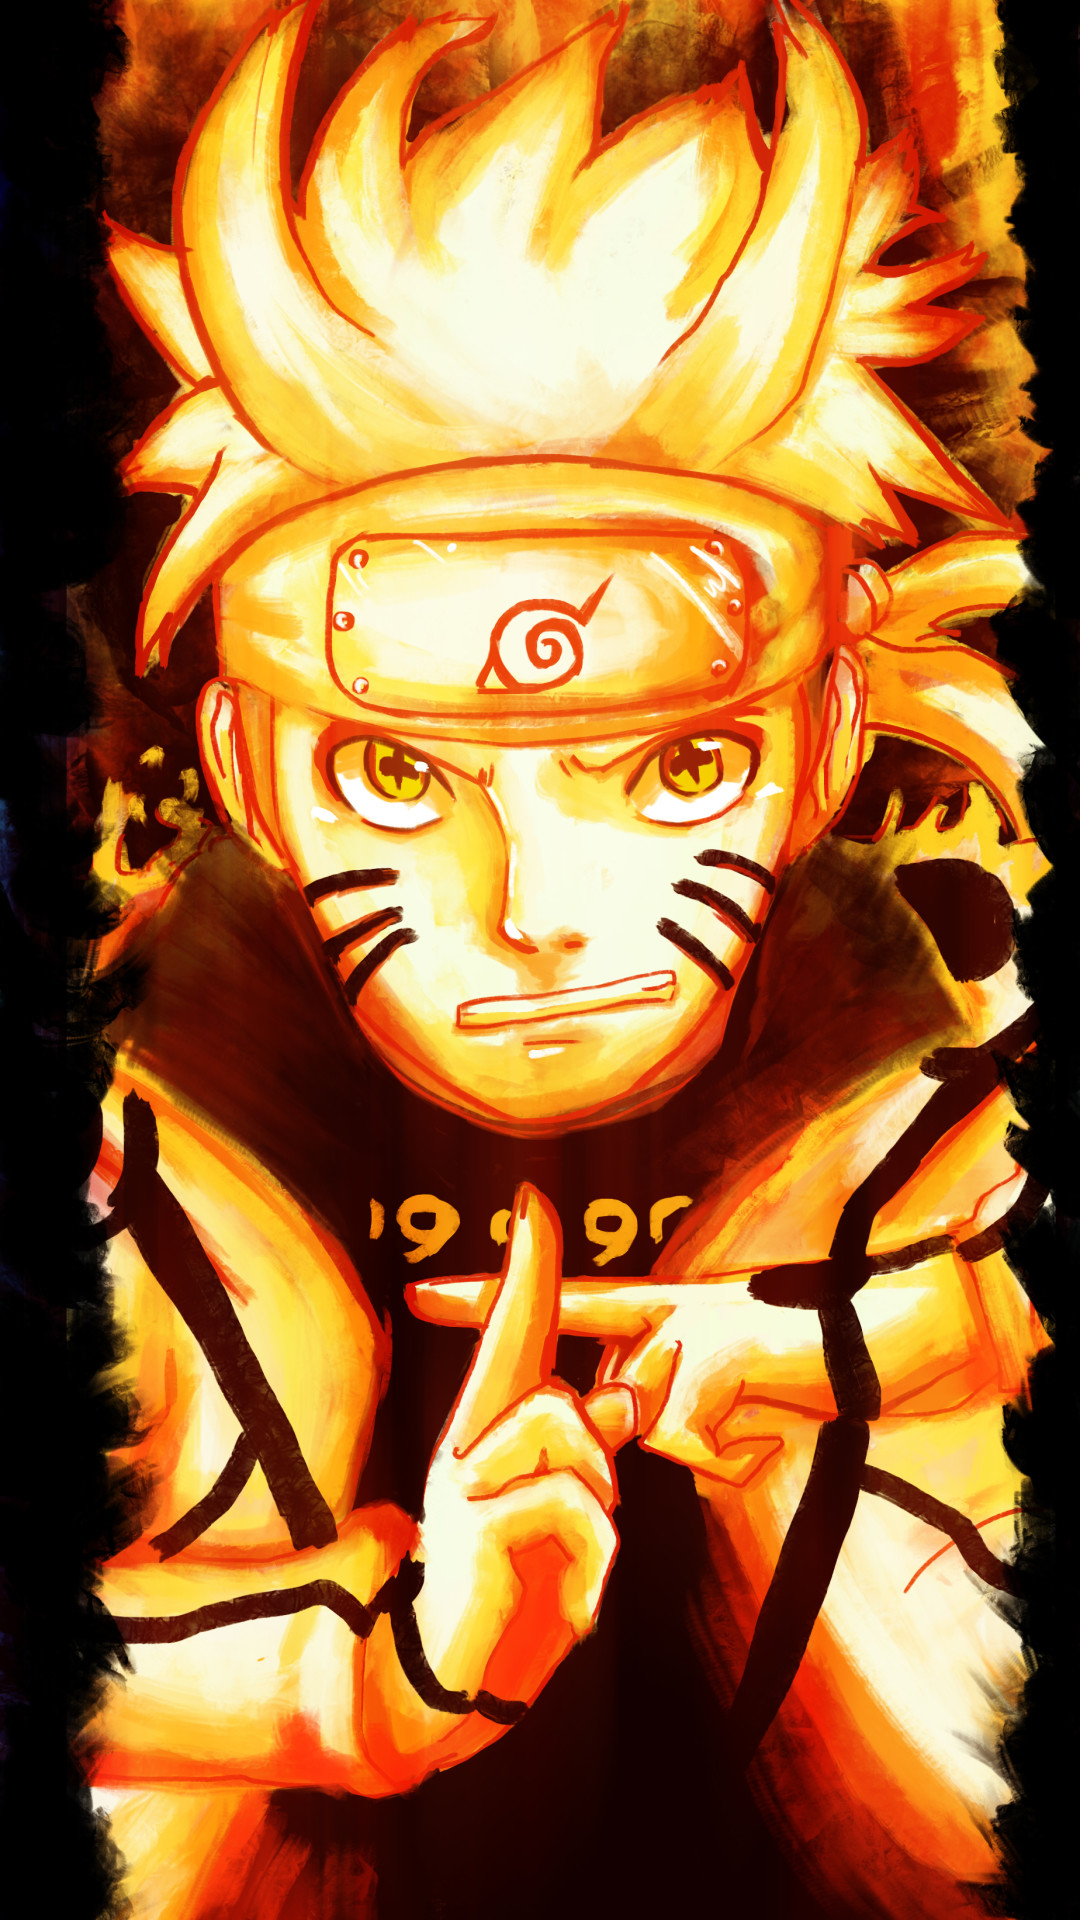 Wallpaper Naruto Posted By Michelle Mercado